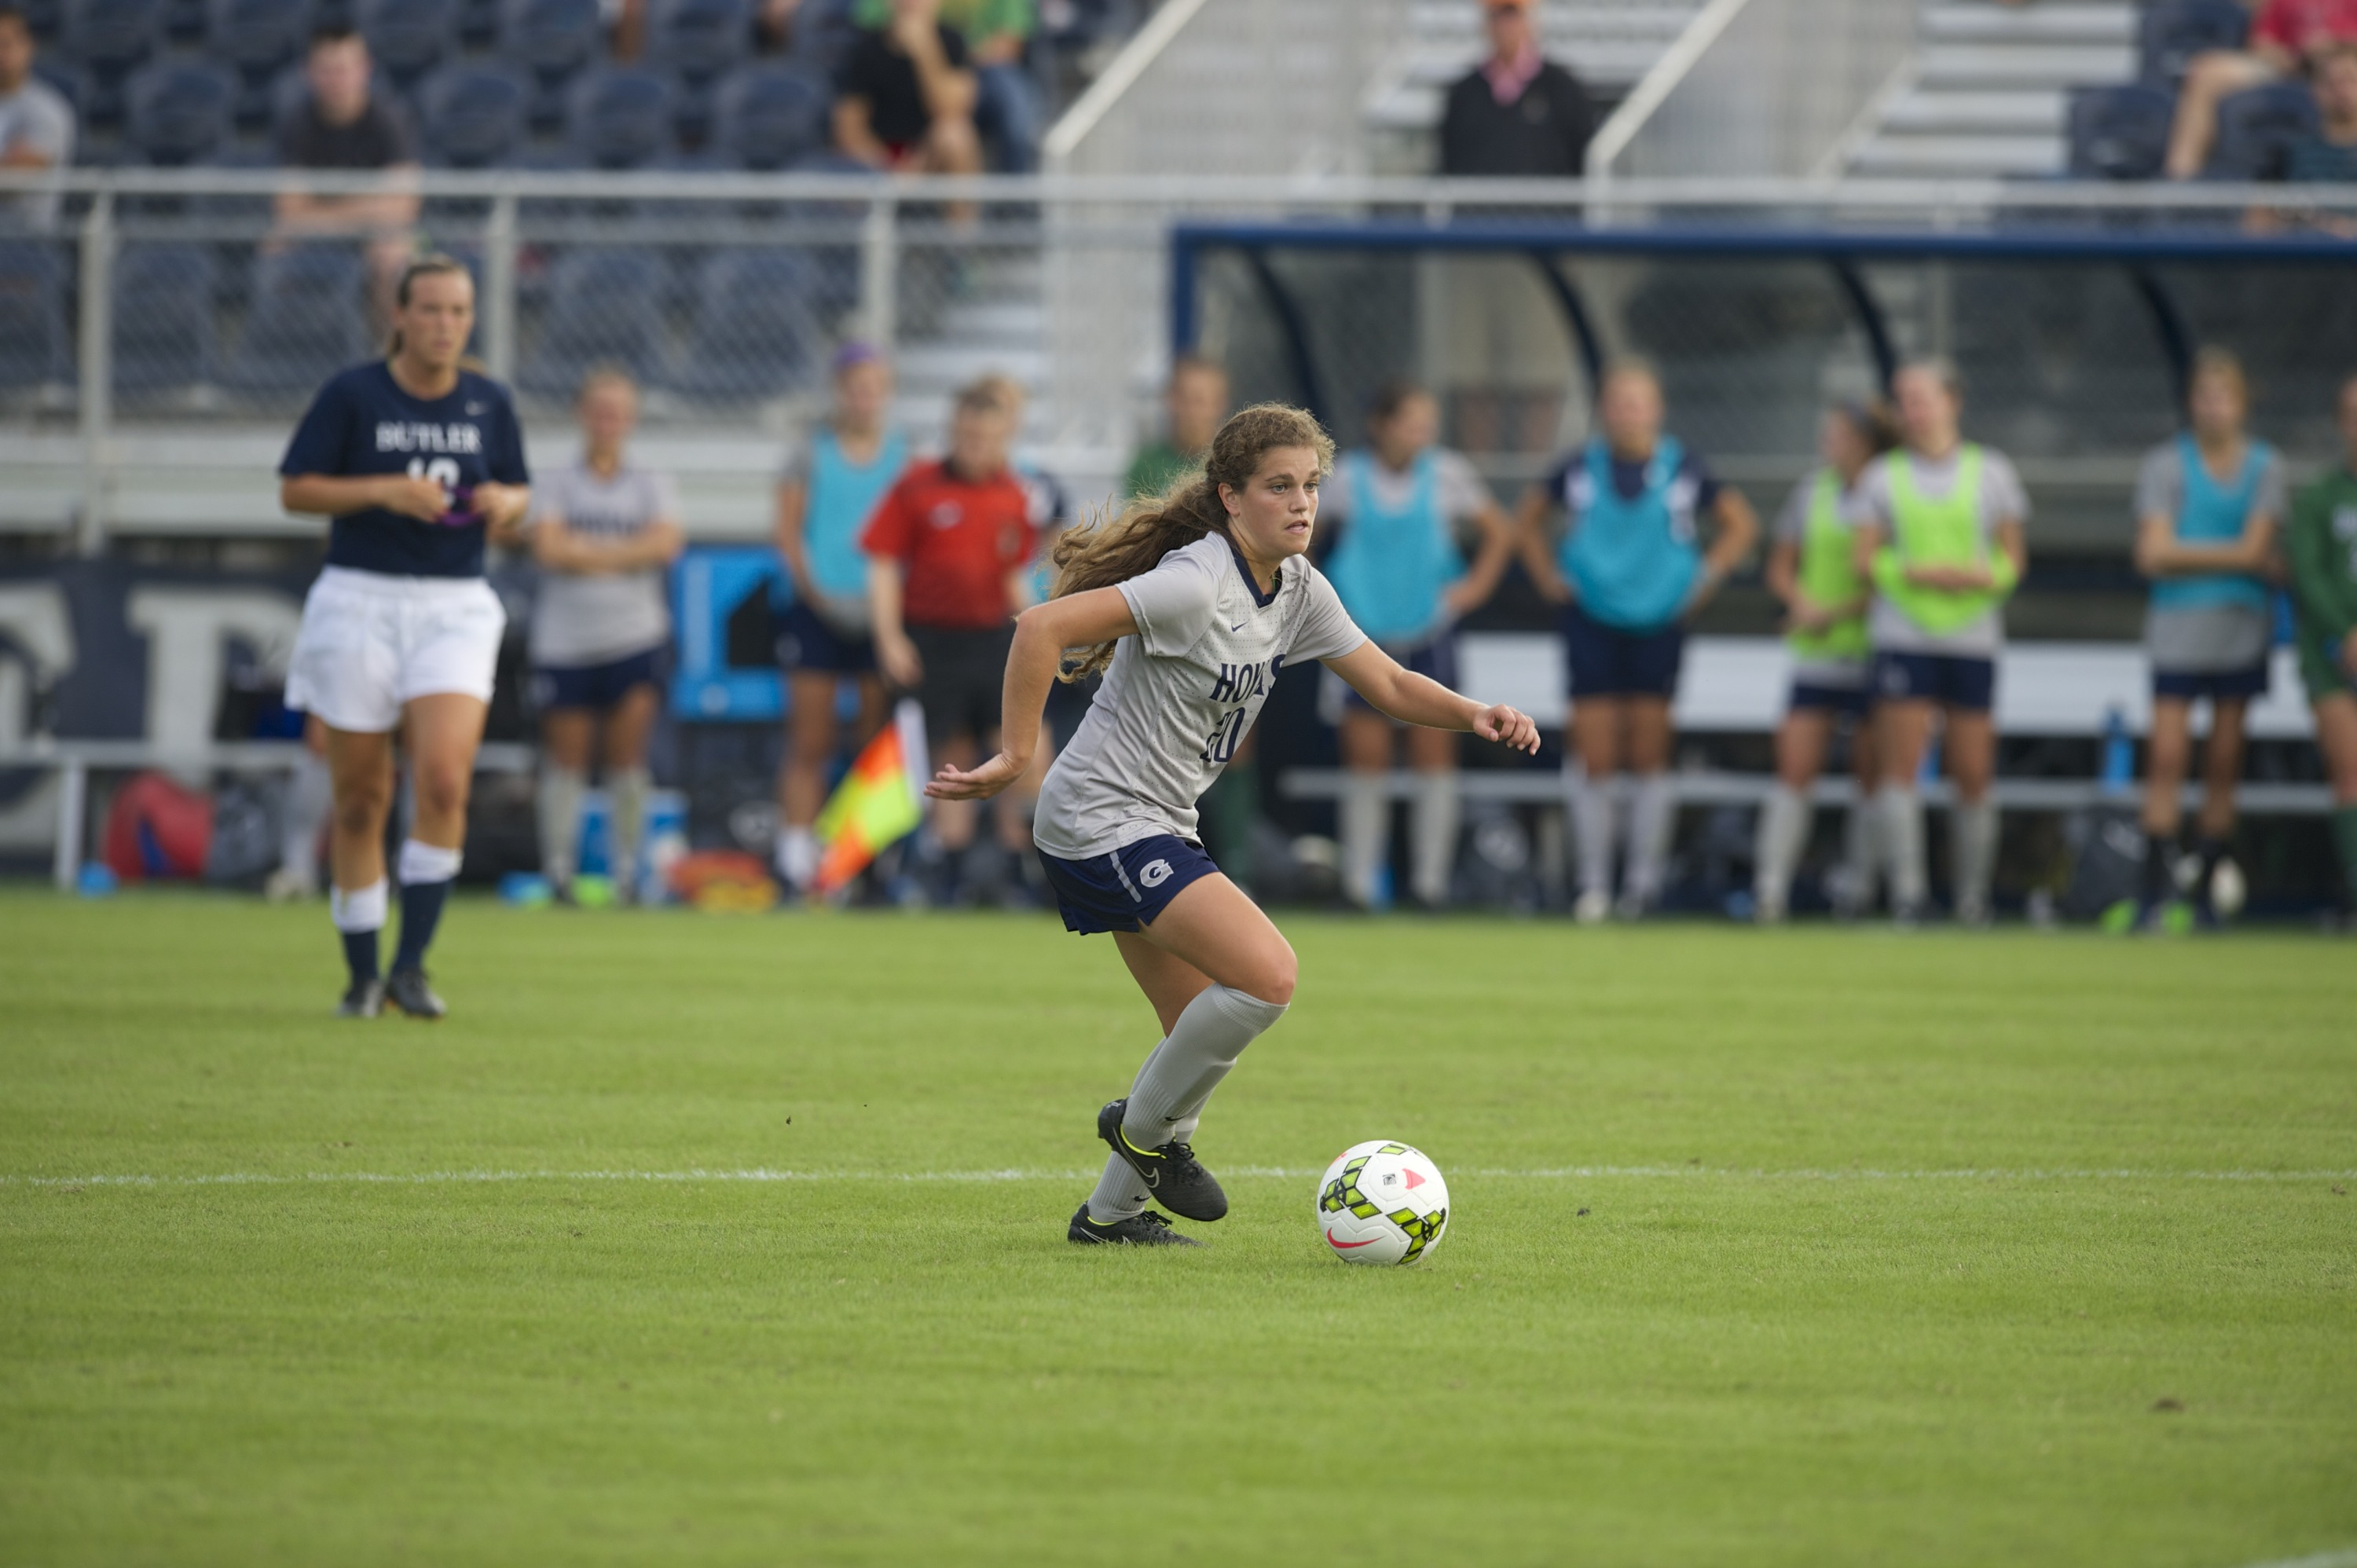 Rachel Corboz scored a pair of goals in Georgetown's 2-1 double overtime win at Providence on Sunday.